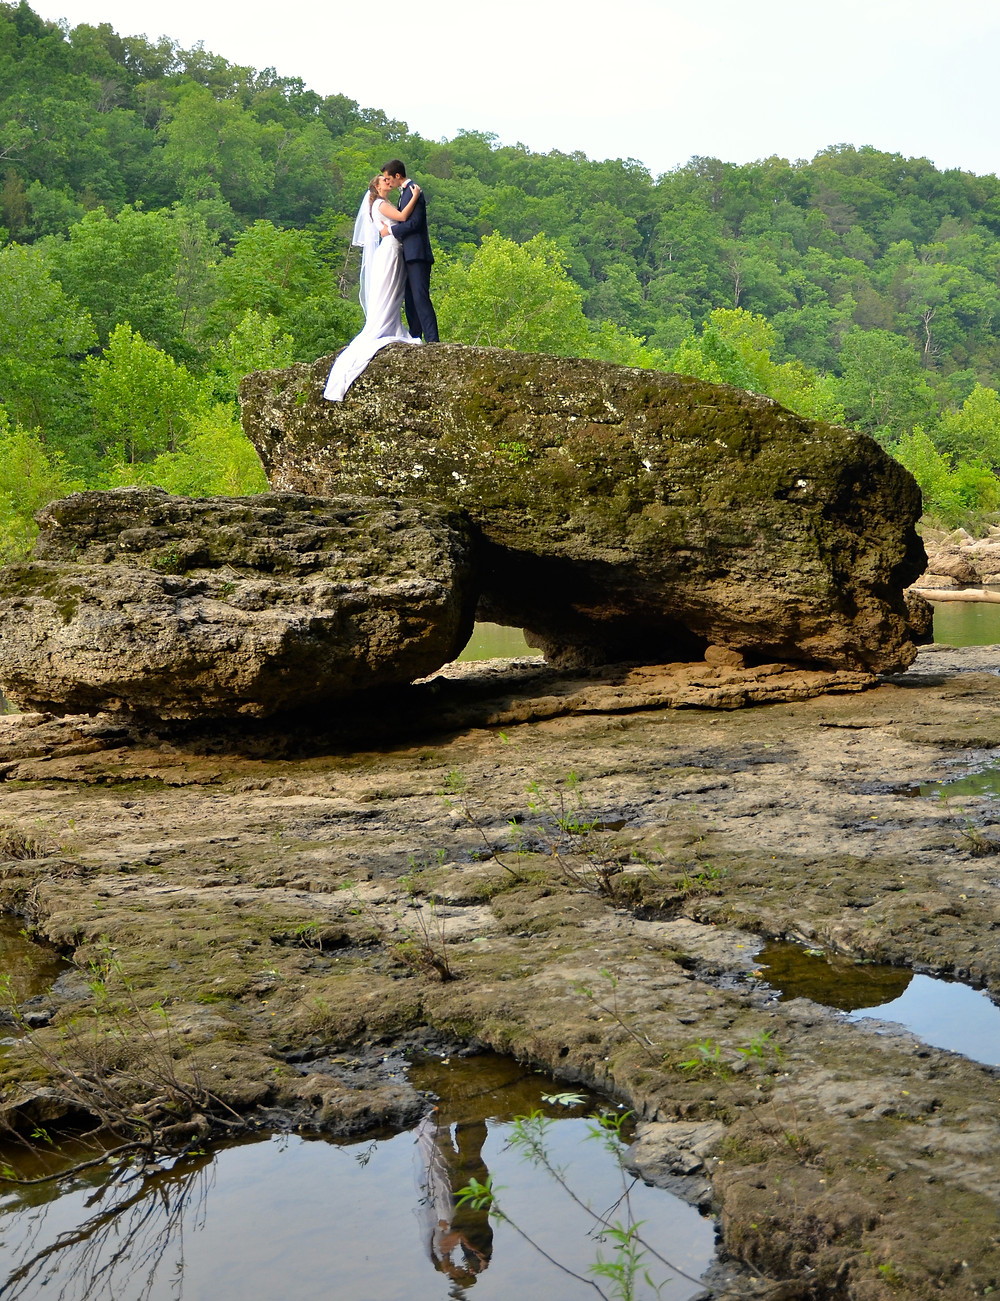 Sam and Jenna's wedding photo at Rock Island State Park in Tennessee